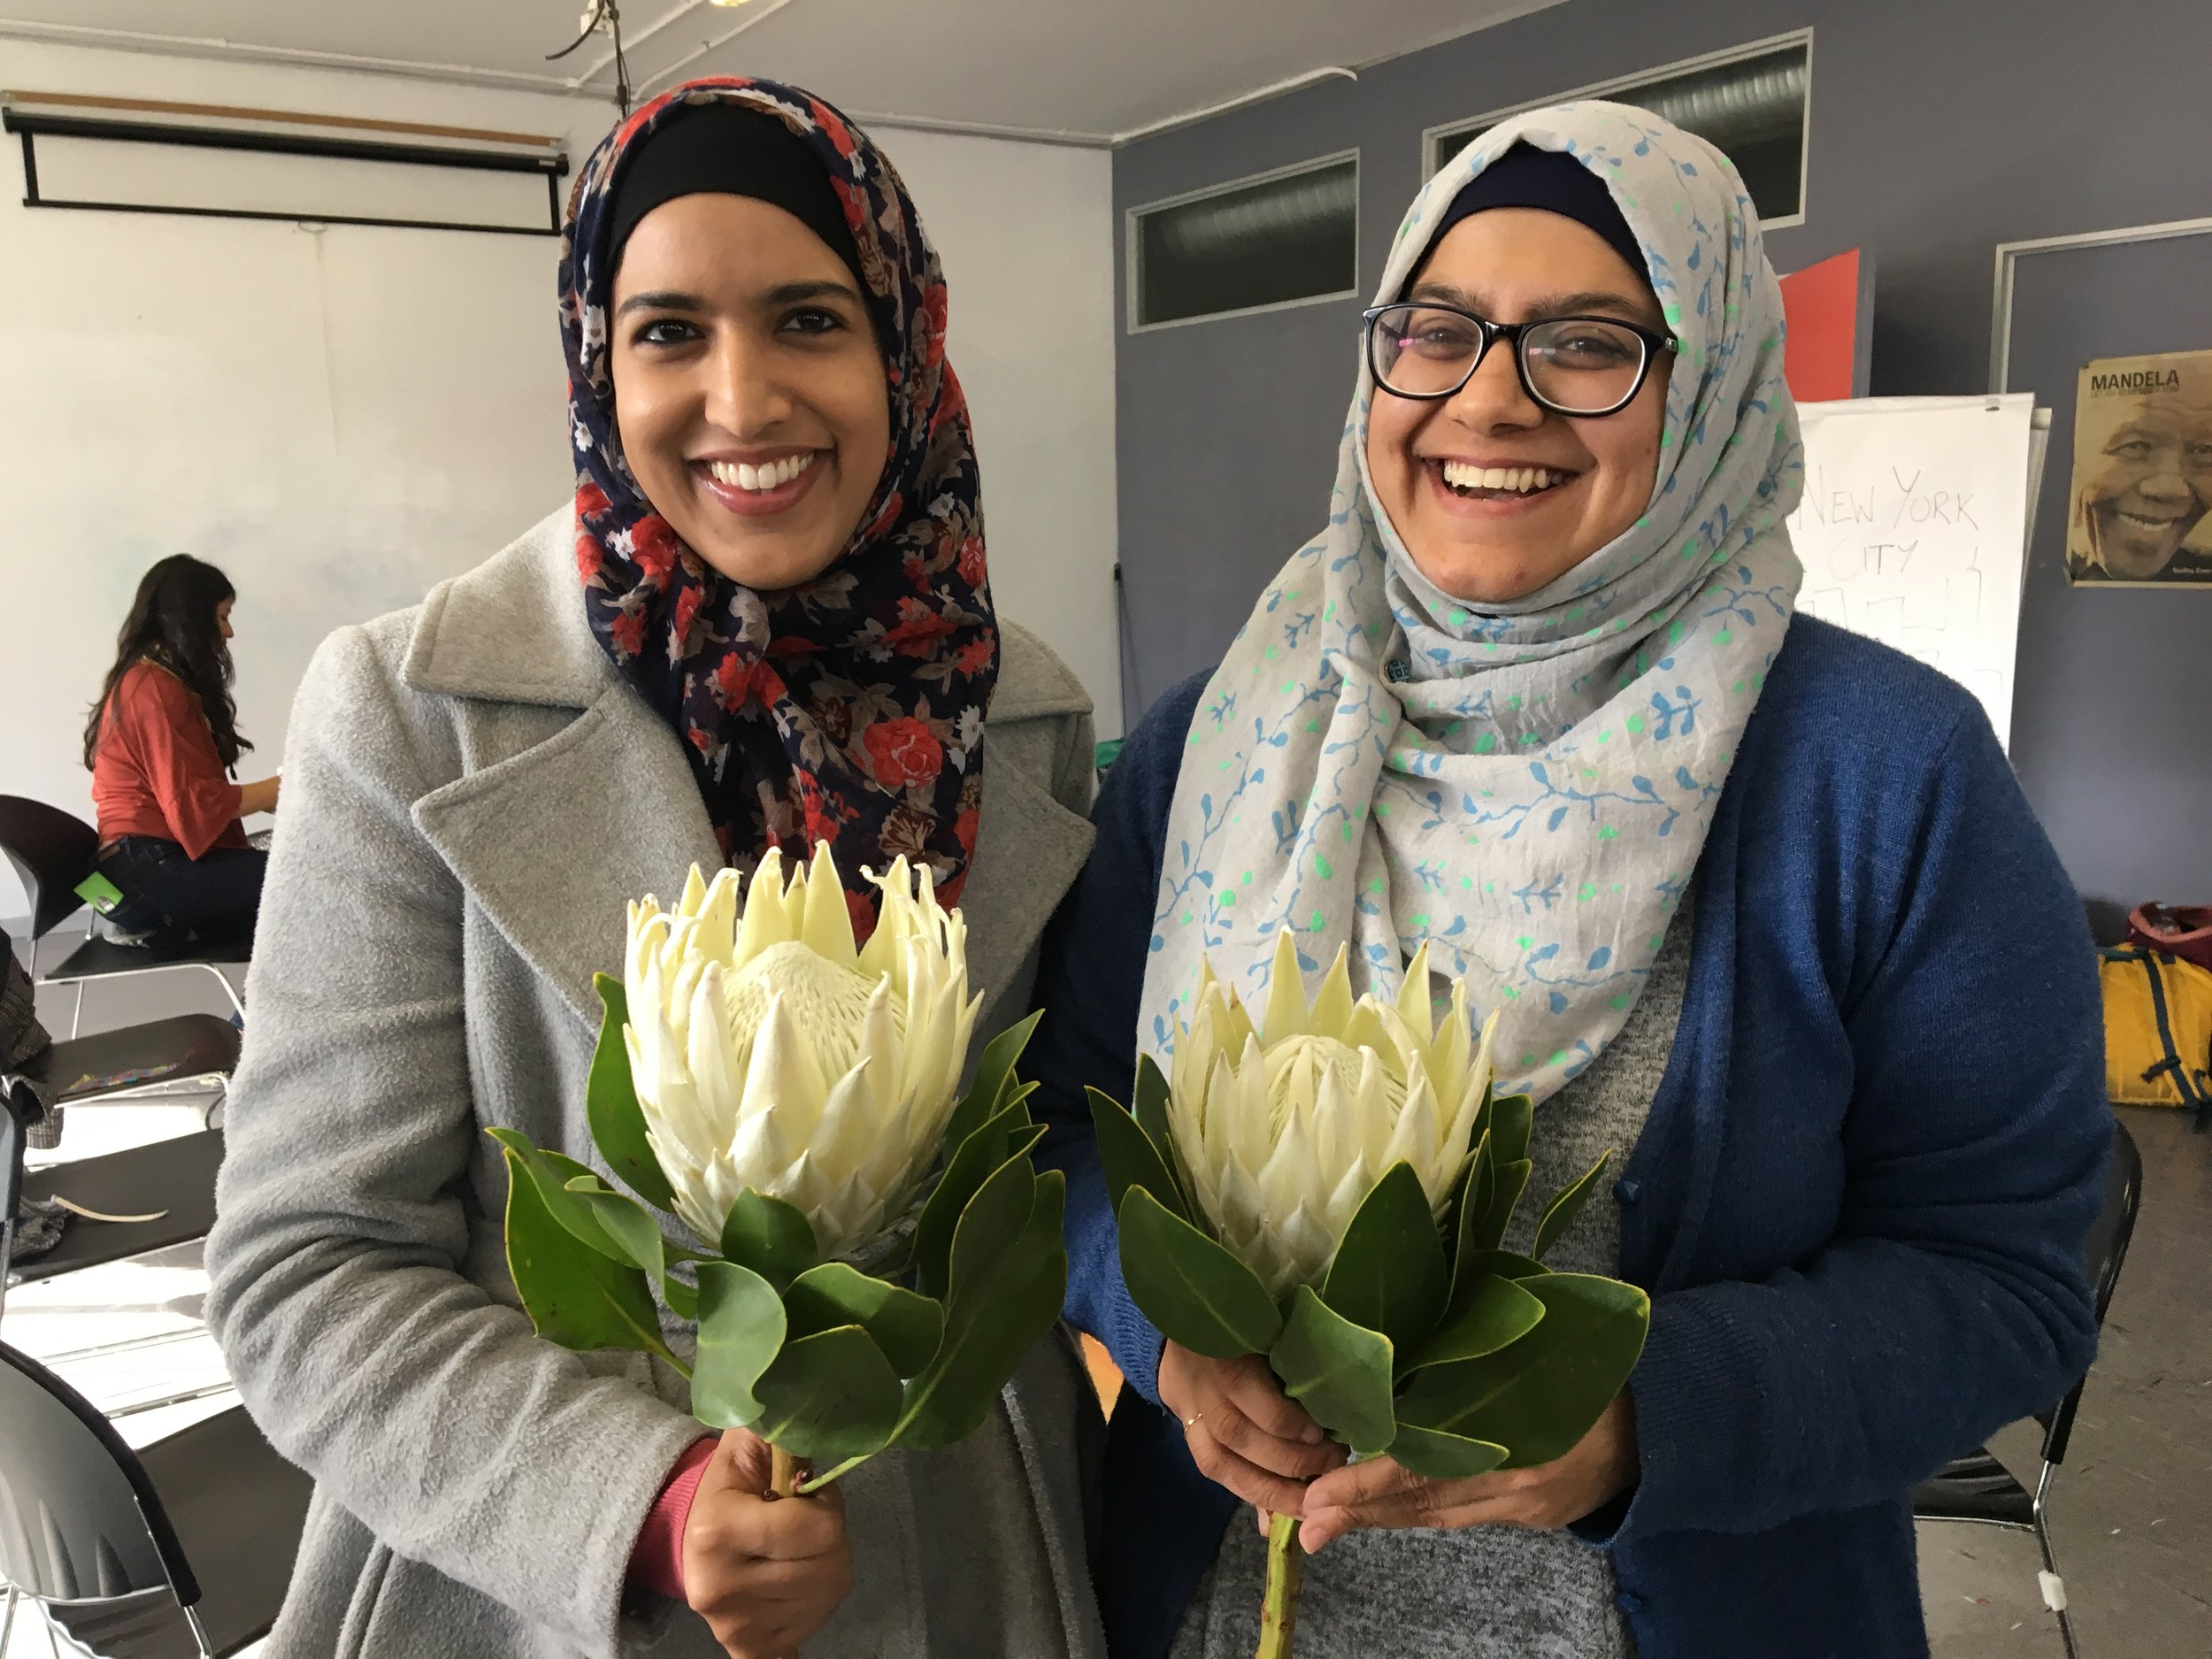 Kausar and Saleemah celebrating the wrap up of the fellowship with South Africa's national flower, the impressive Protea